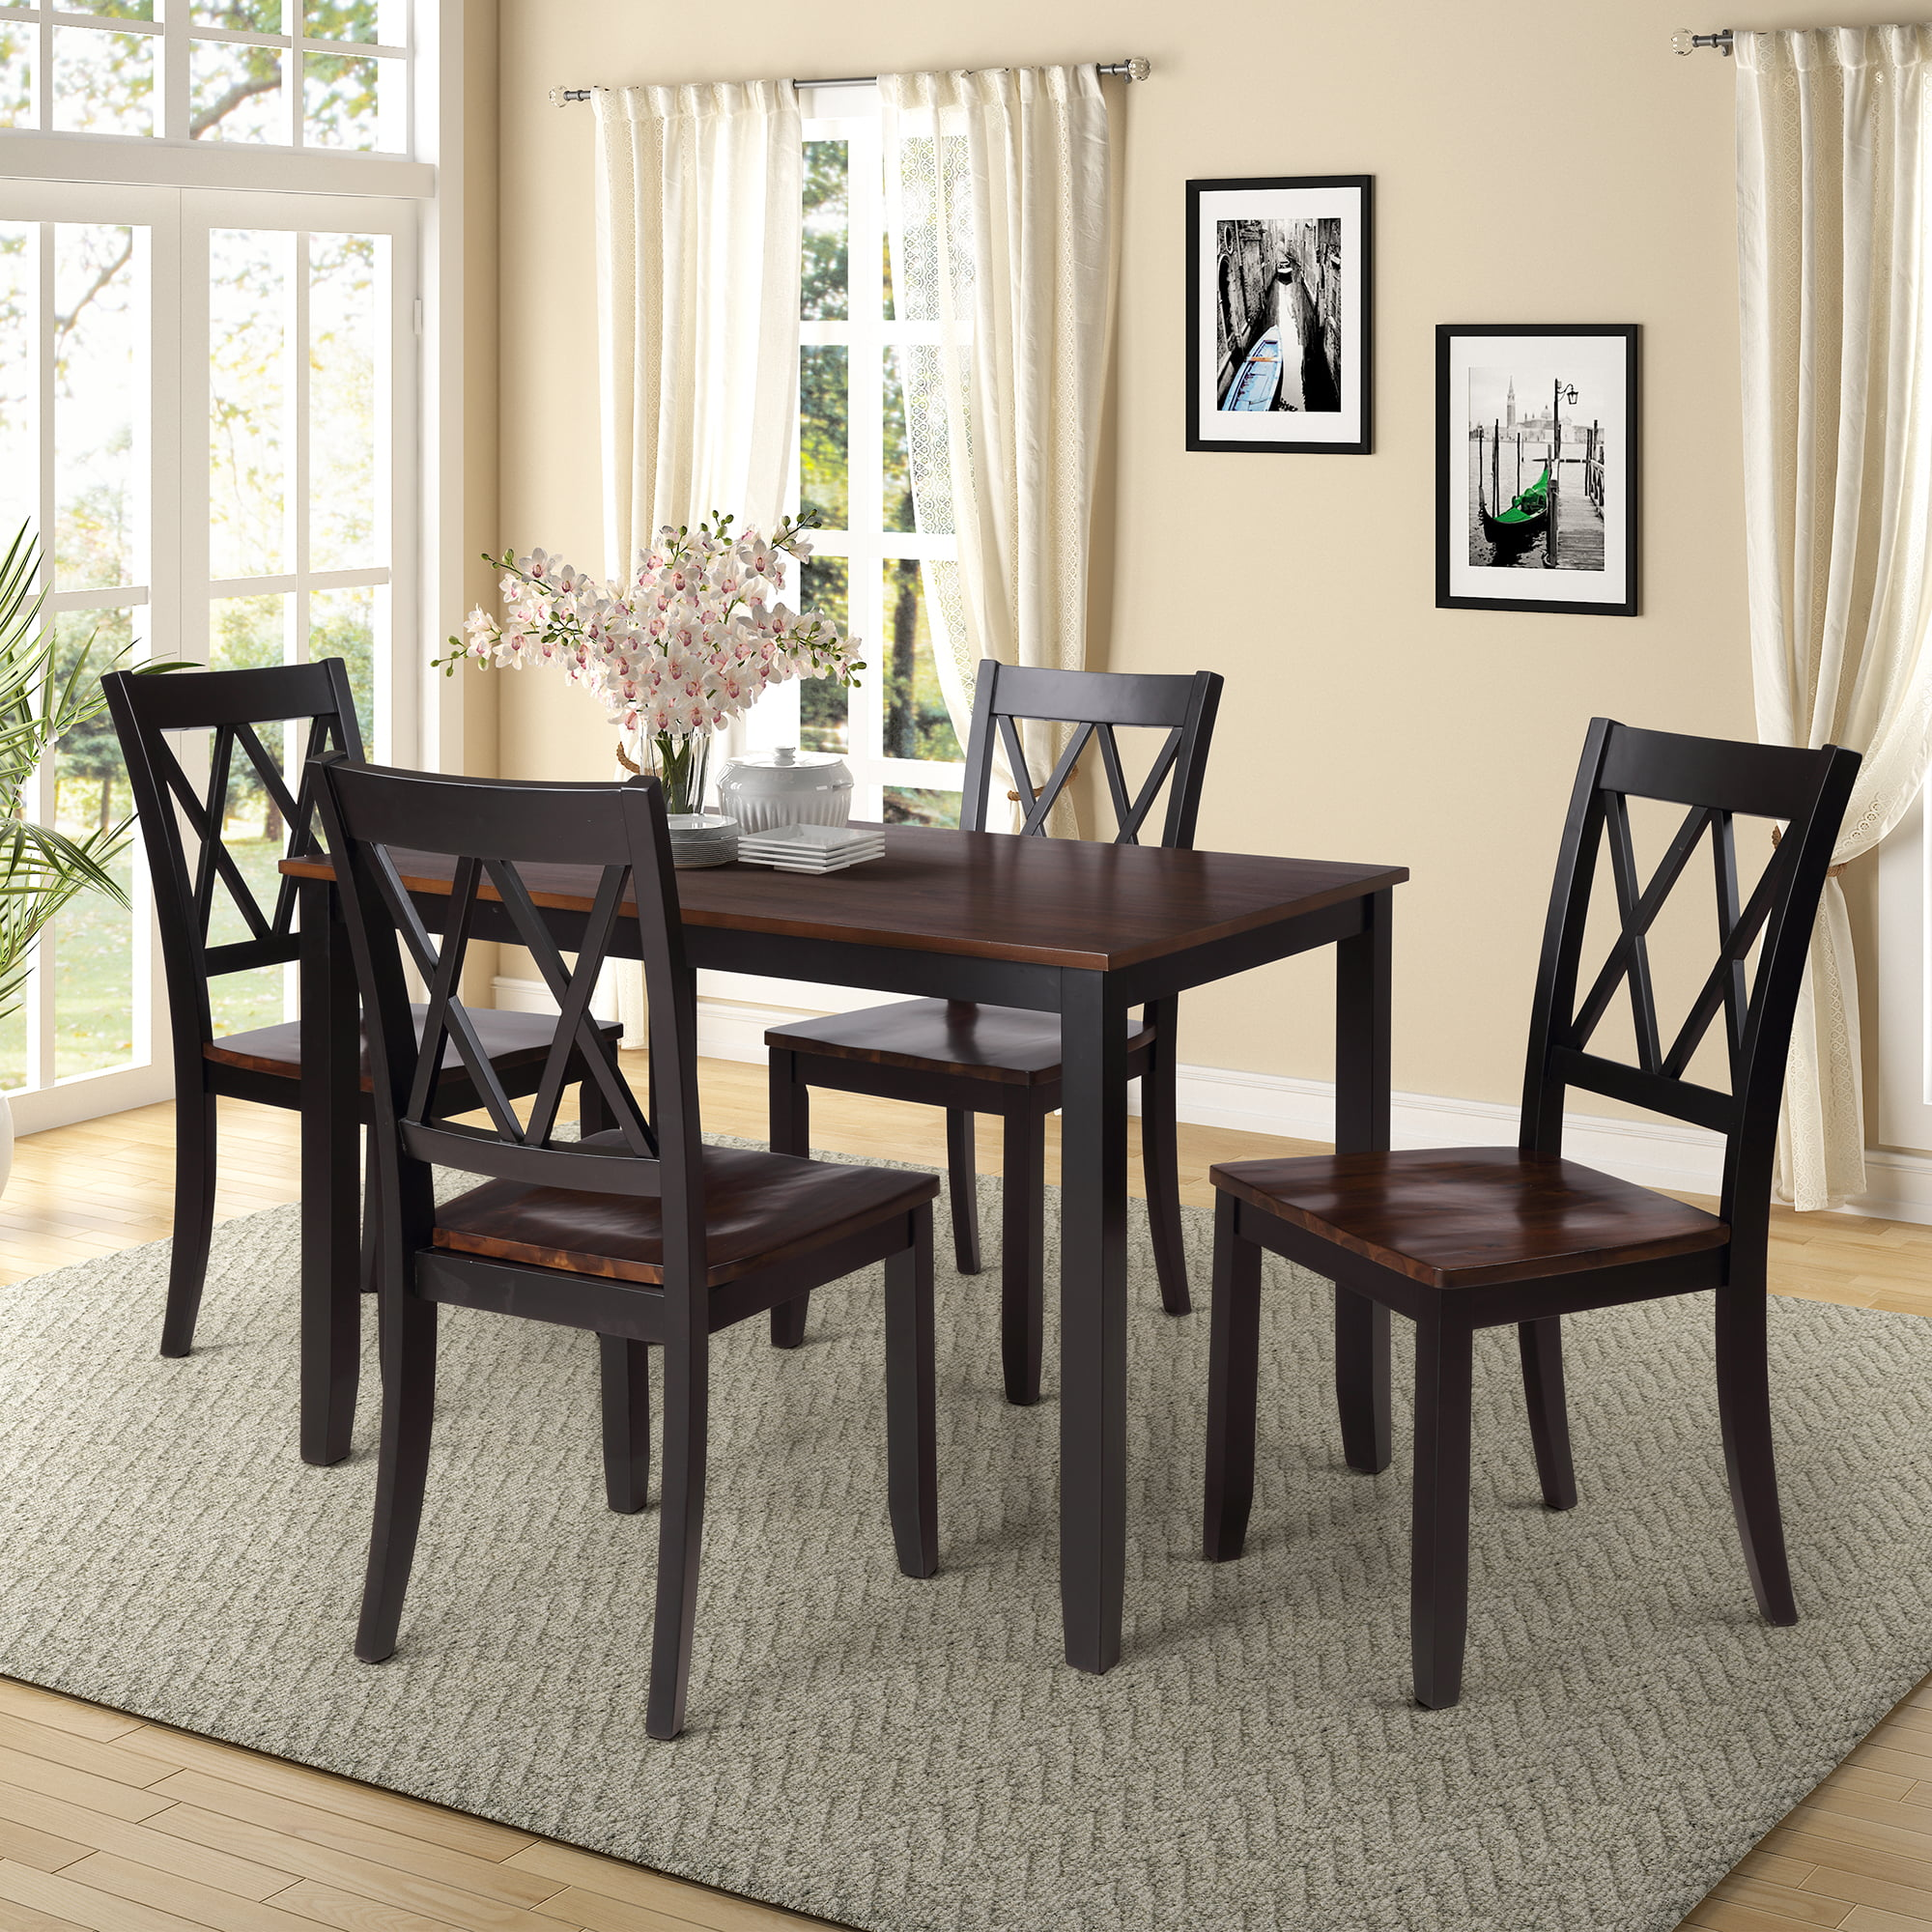 Clearance!Black Dining Table Set For 4, Modern 5 Piece Dining Room Table Sets With Chairs, Heavy Duty Wooden Rectangular Kitchen Table Set For Home, Kitchen, Living Room, Restaurant, L865 - Walmart.com -